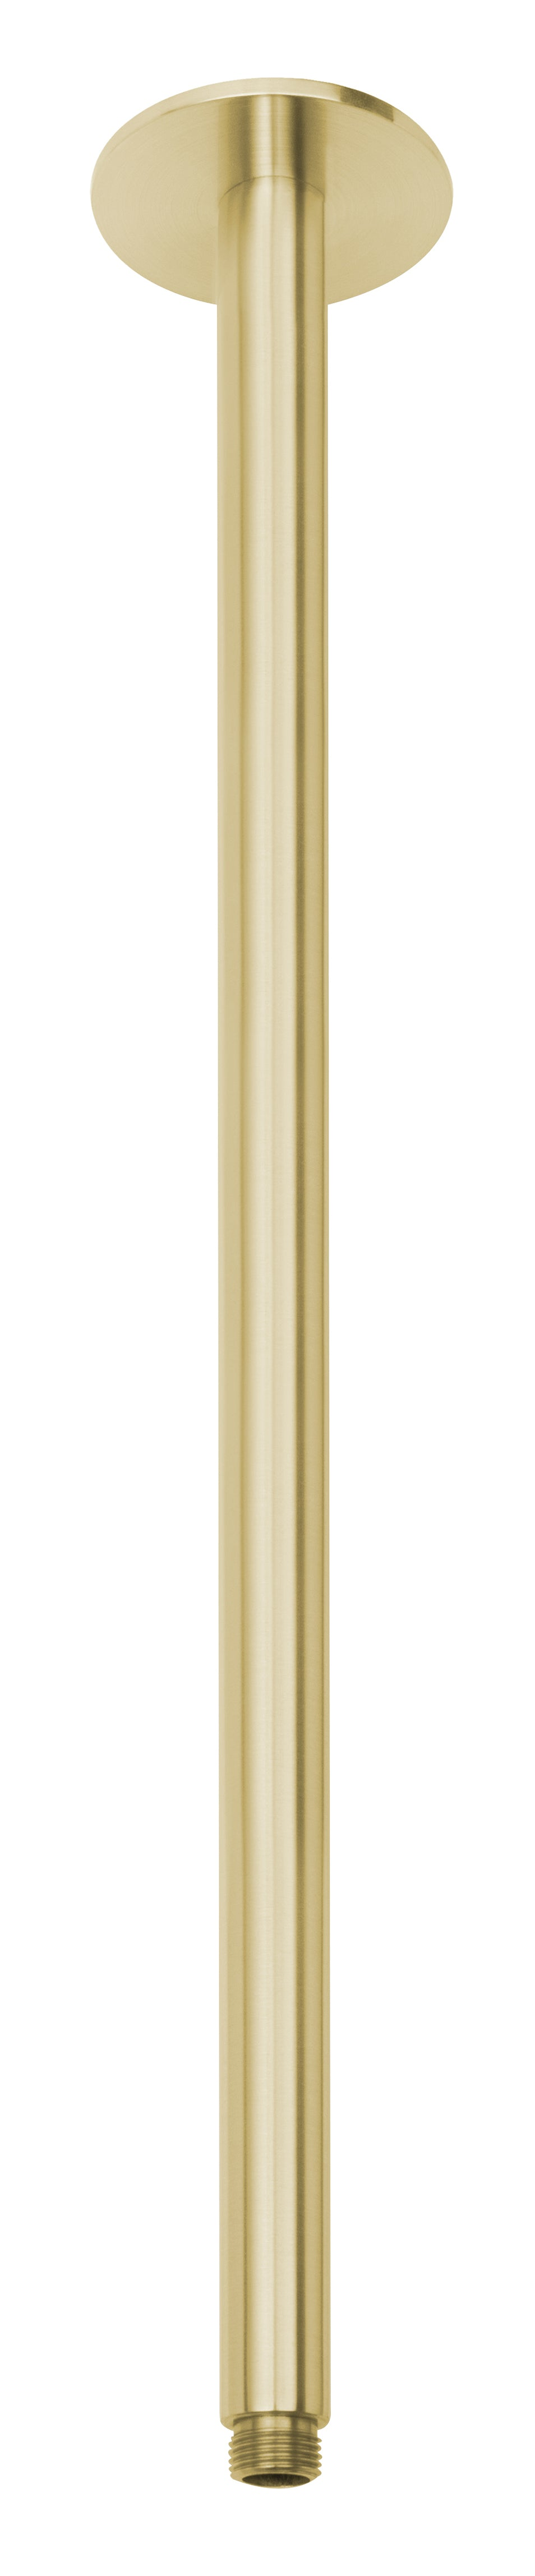 Vivid Ceiling Arm Only 450mm (Brushed Gold)